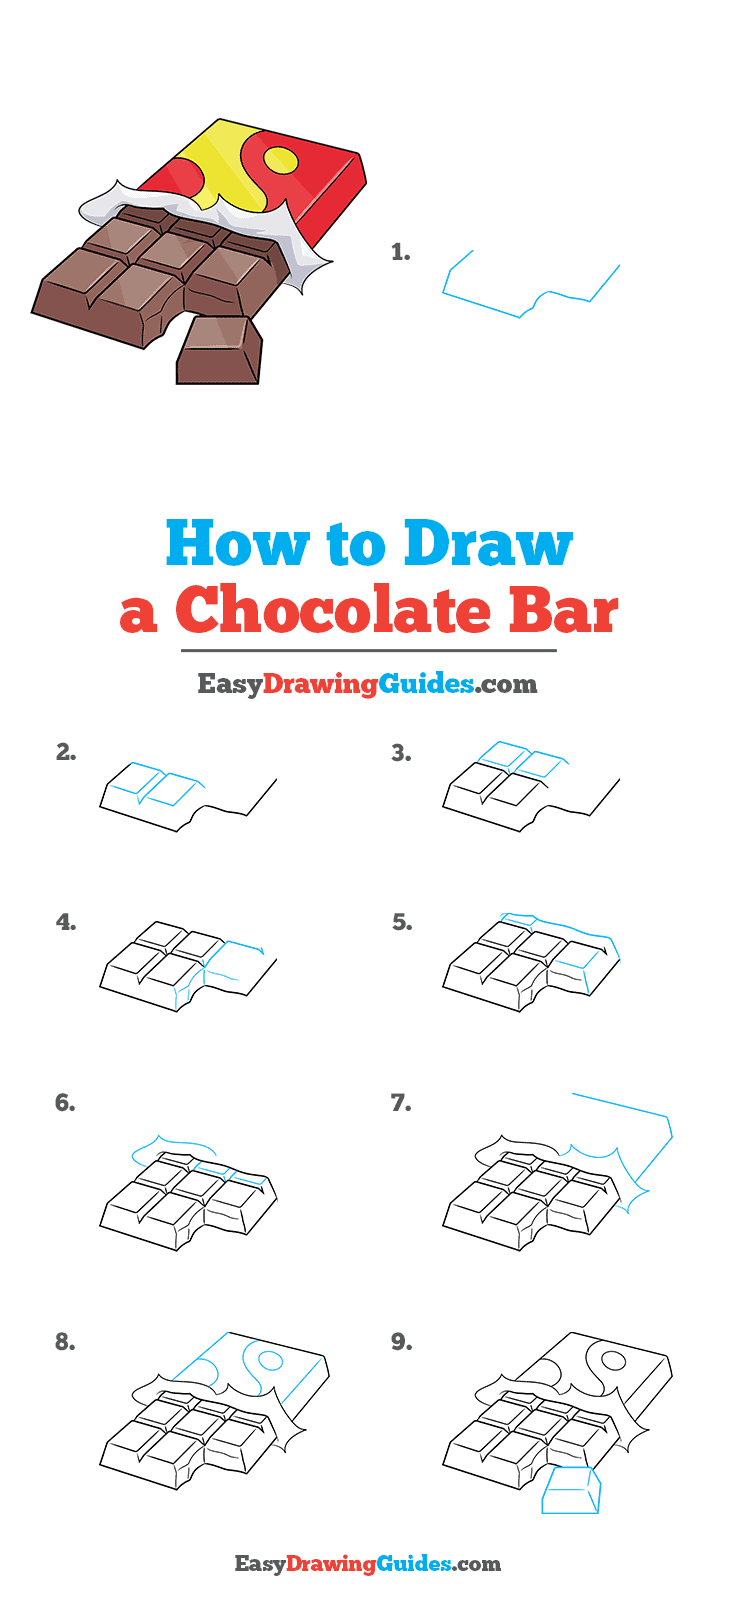 How to Draw a Chocolate Bar Step by Step Tutorial Image